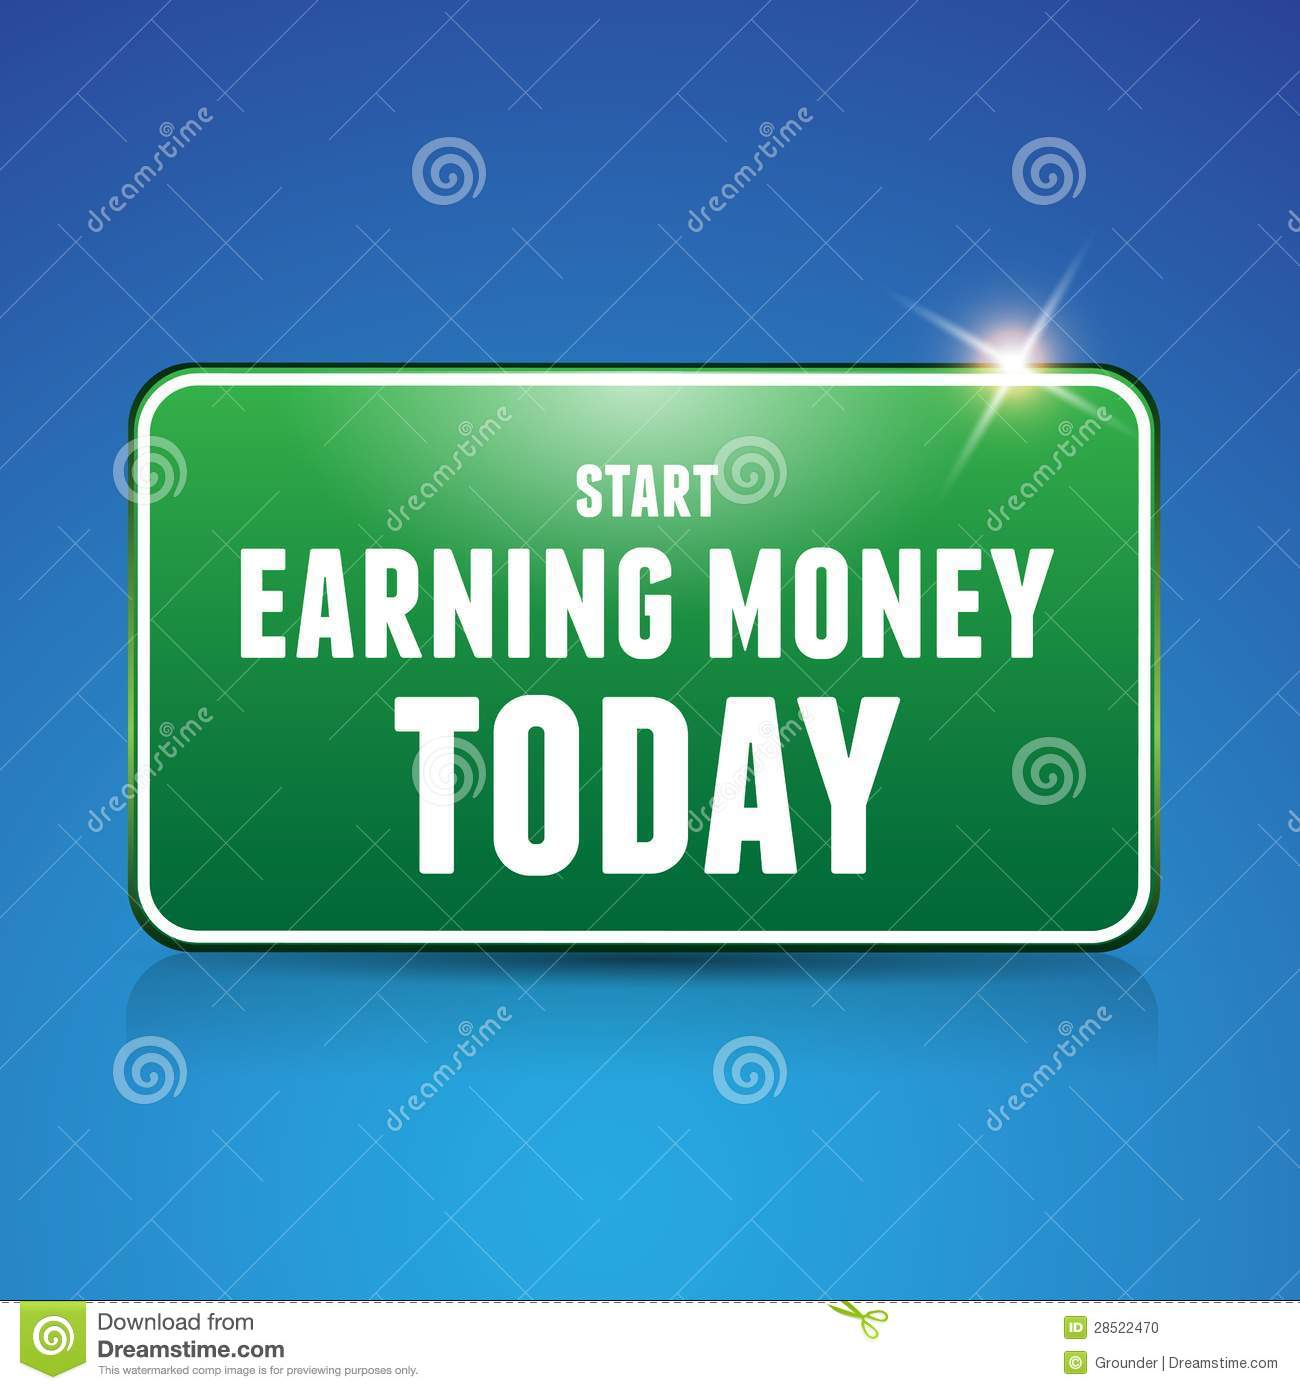 Earn To Day